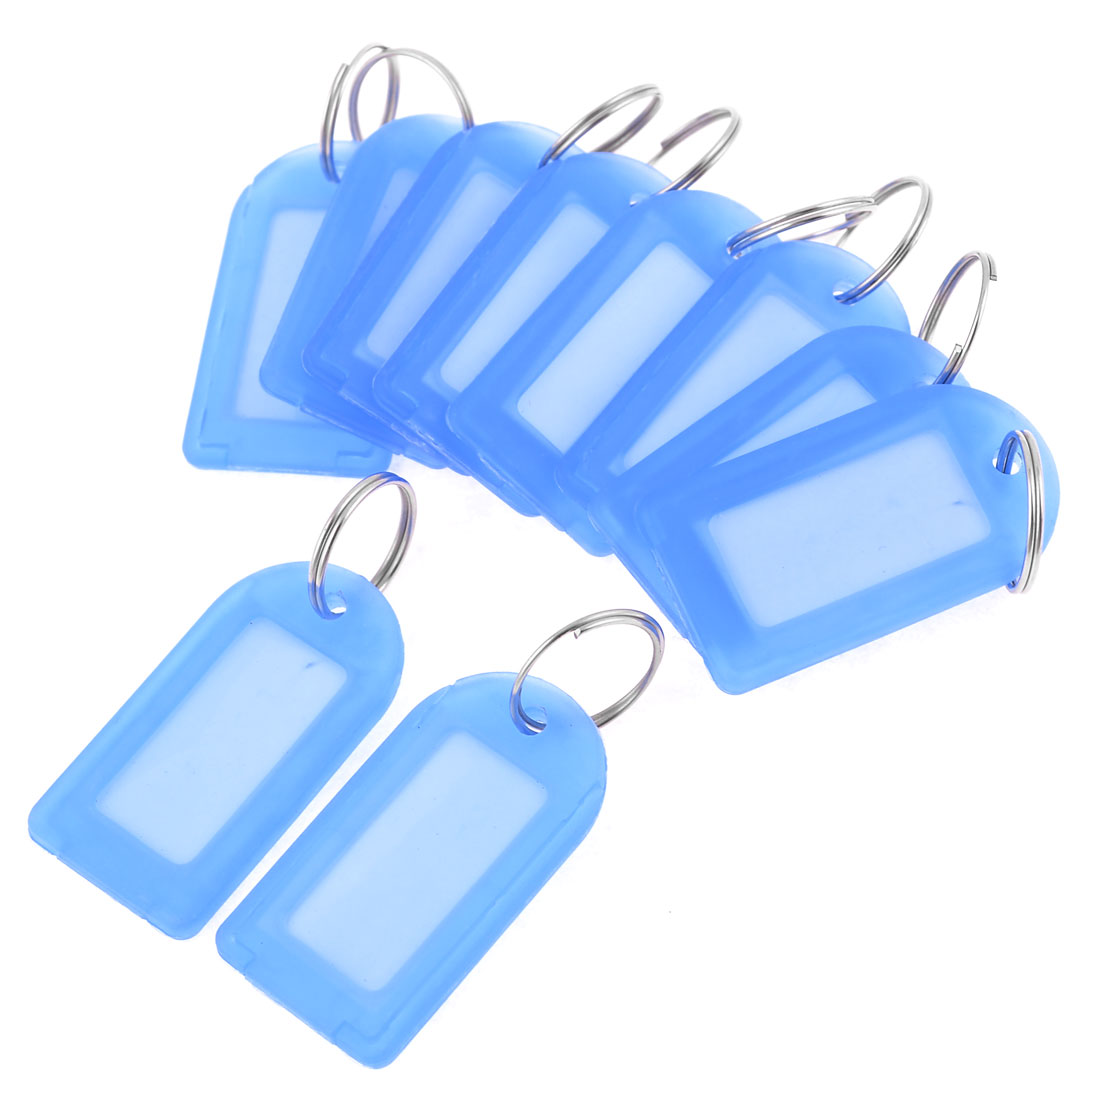 Waitress 10 Pcs Blue Plastic Name Tag Badge Clip Photo Holder w Key Chain